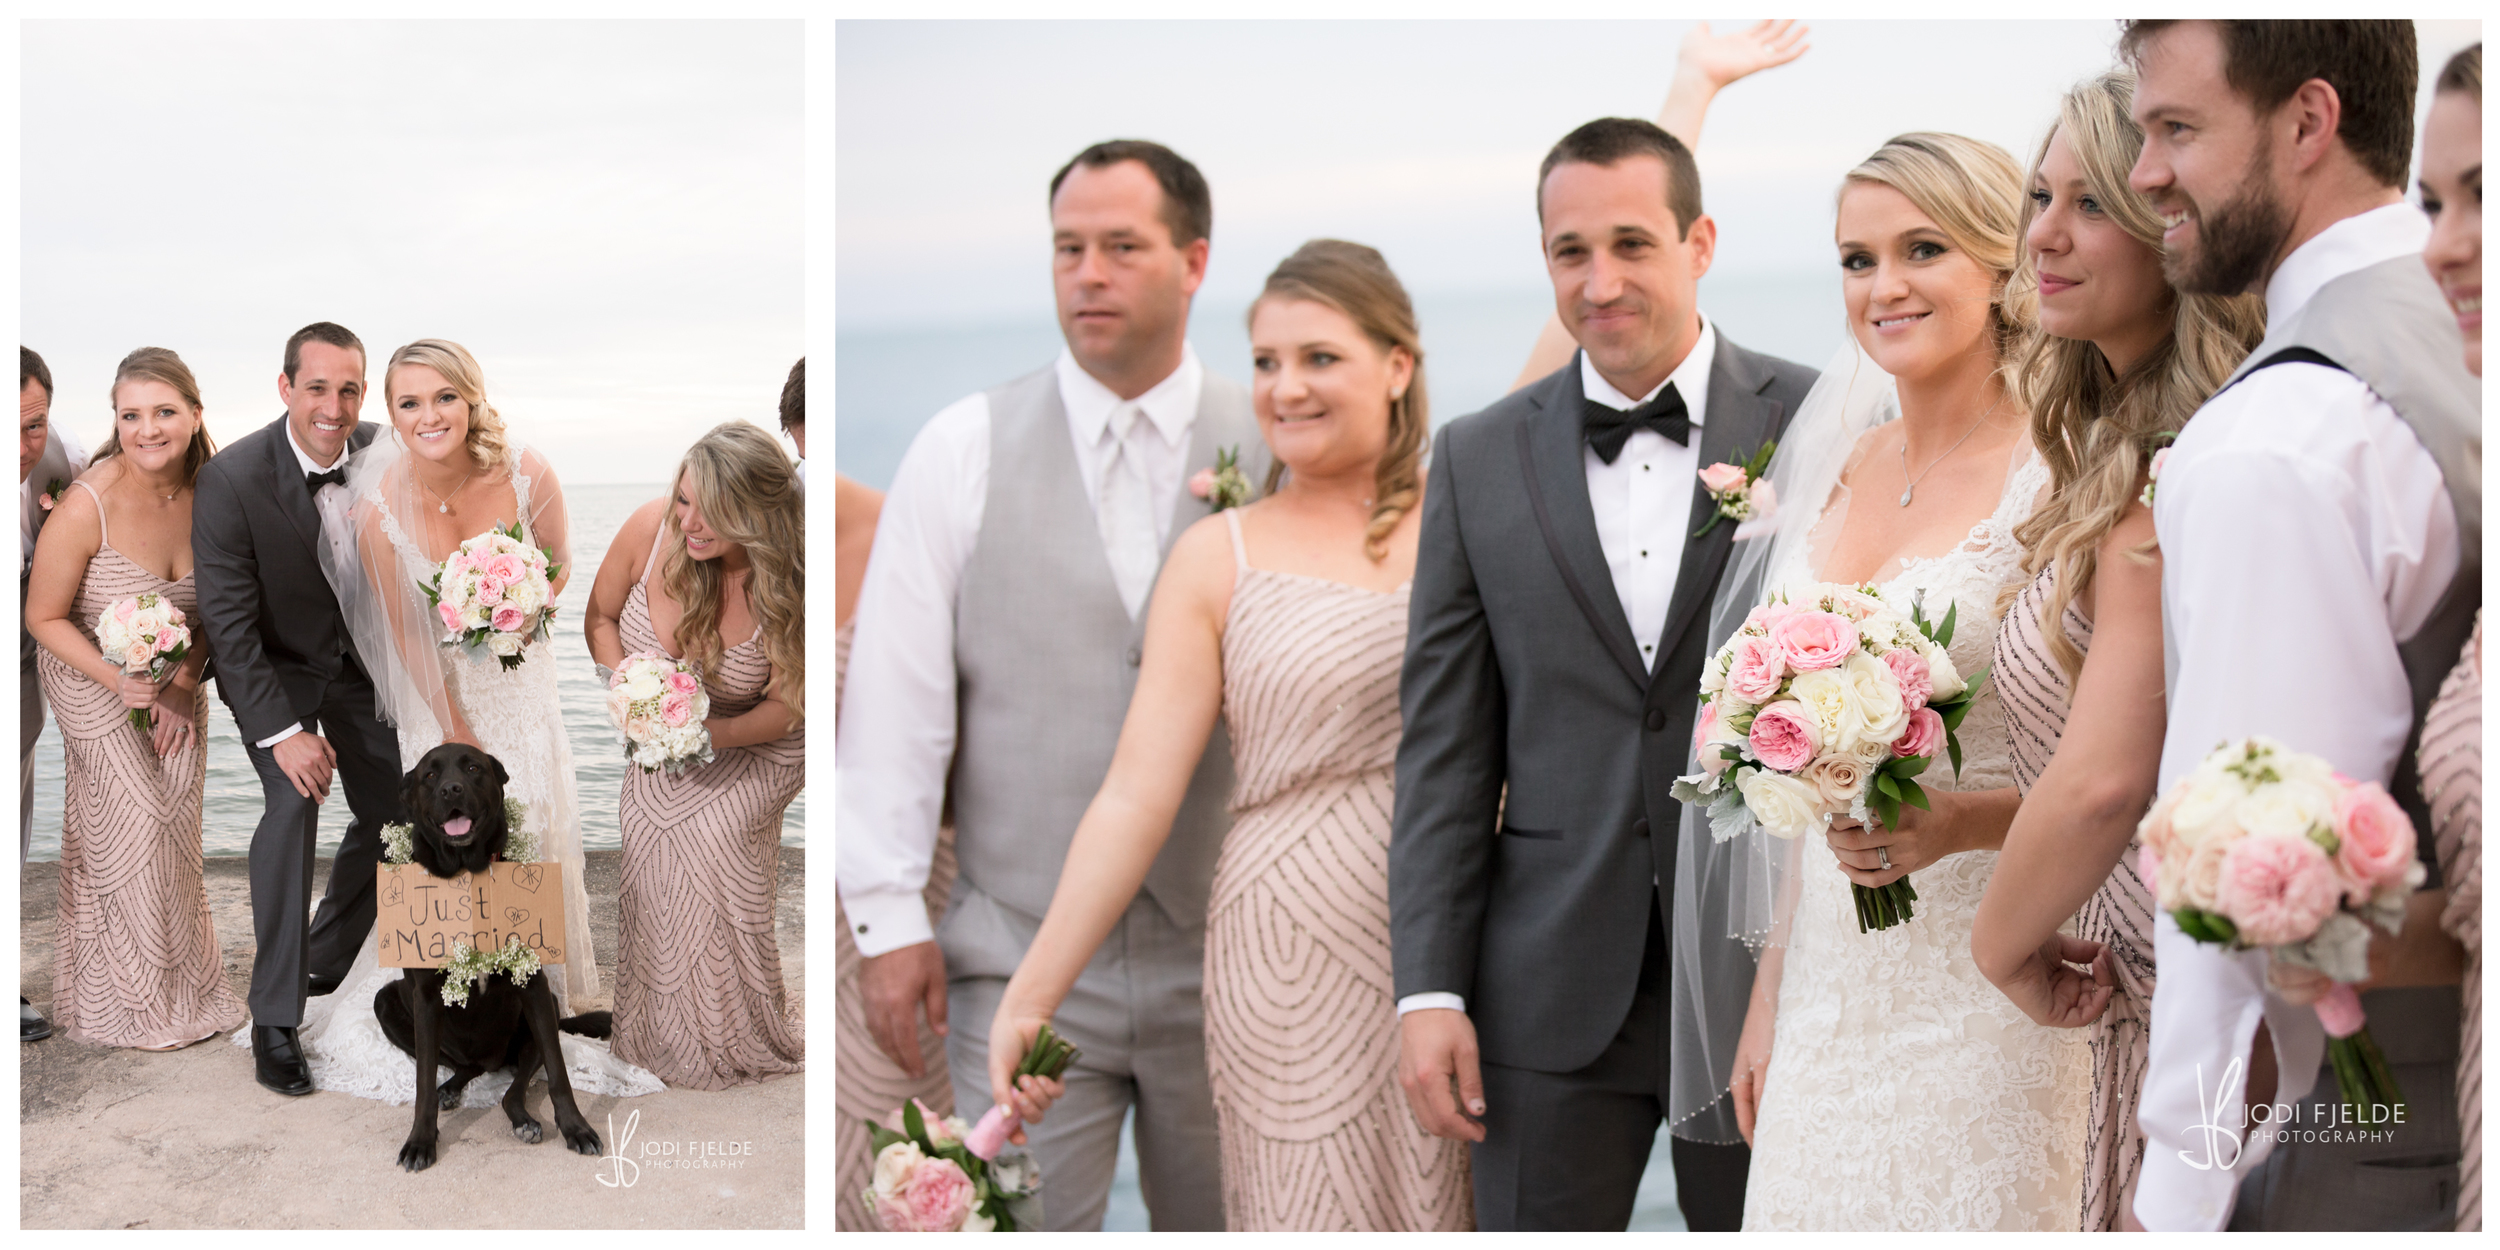 Cocconut_Cove_&_ Marina_ wedding_Kalie_and_Kurt 35.jpg